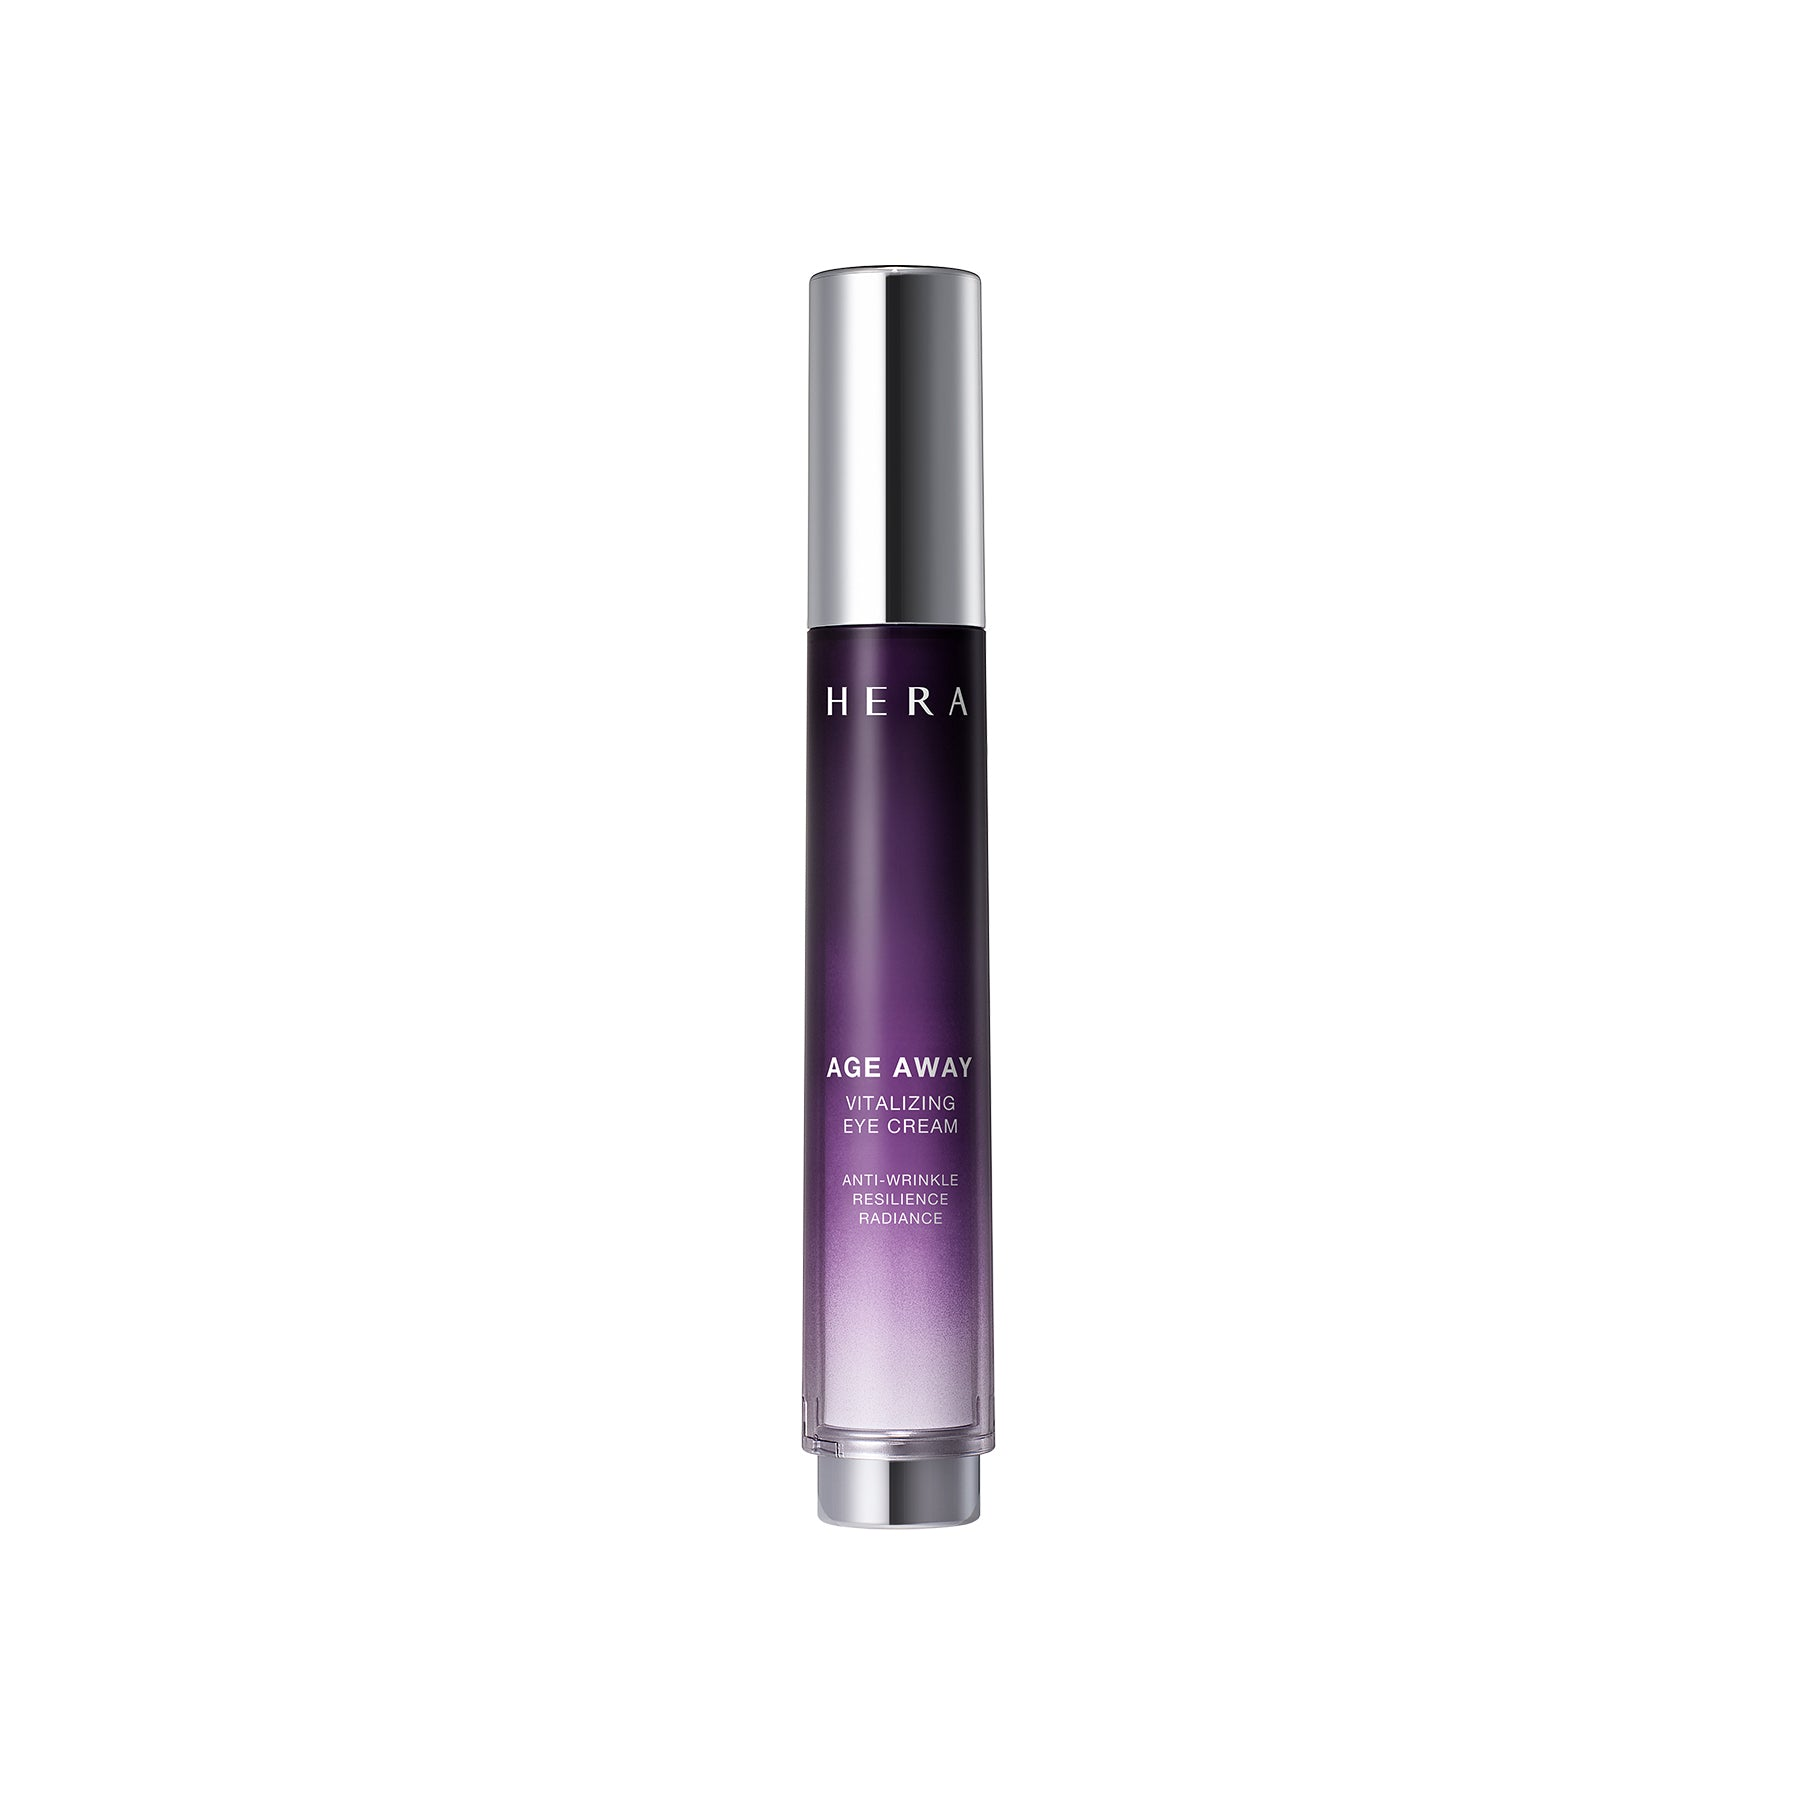 Age Away Vitalizing Eye Cream